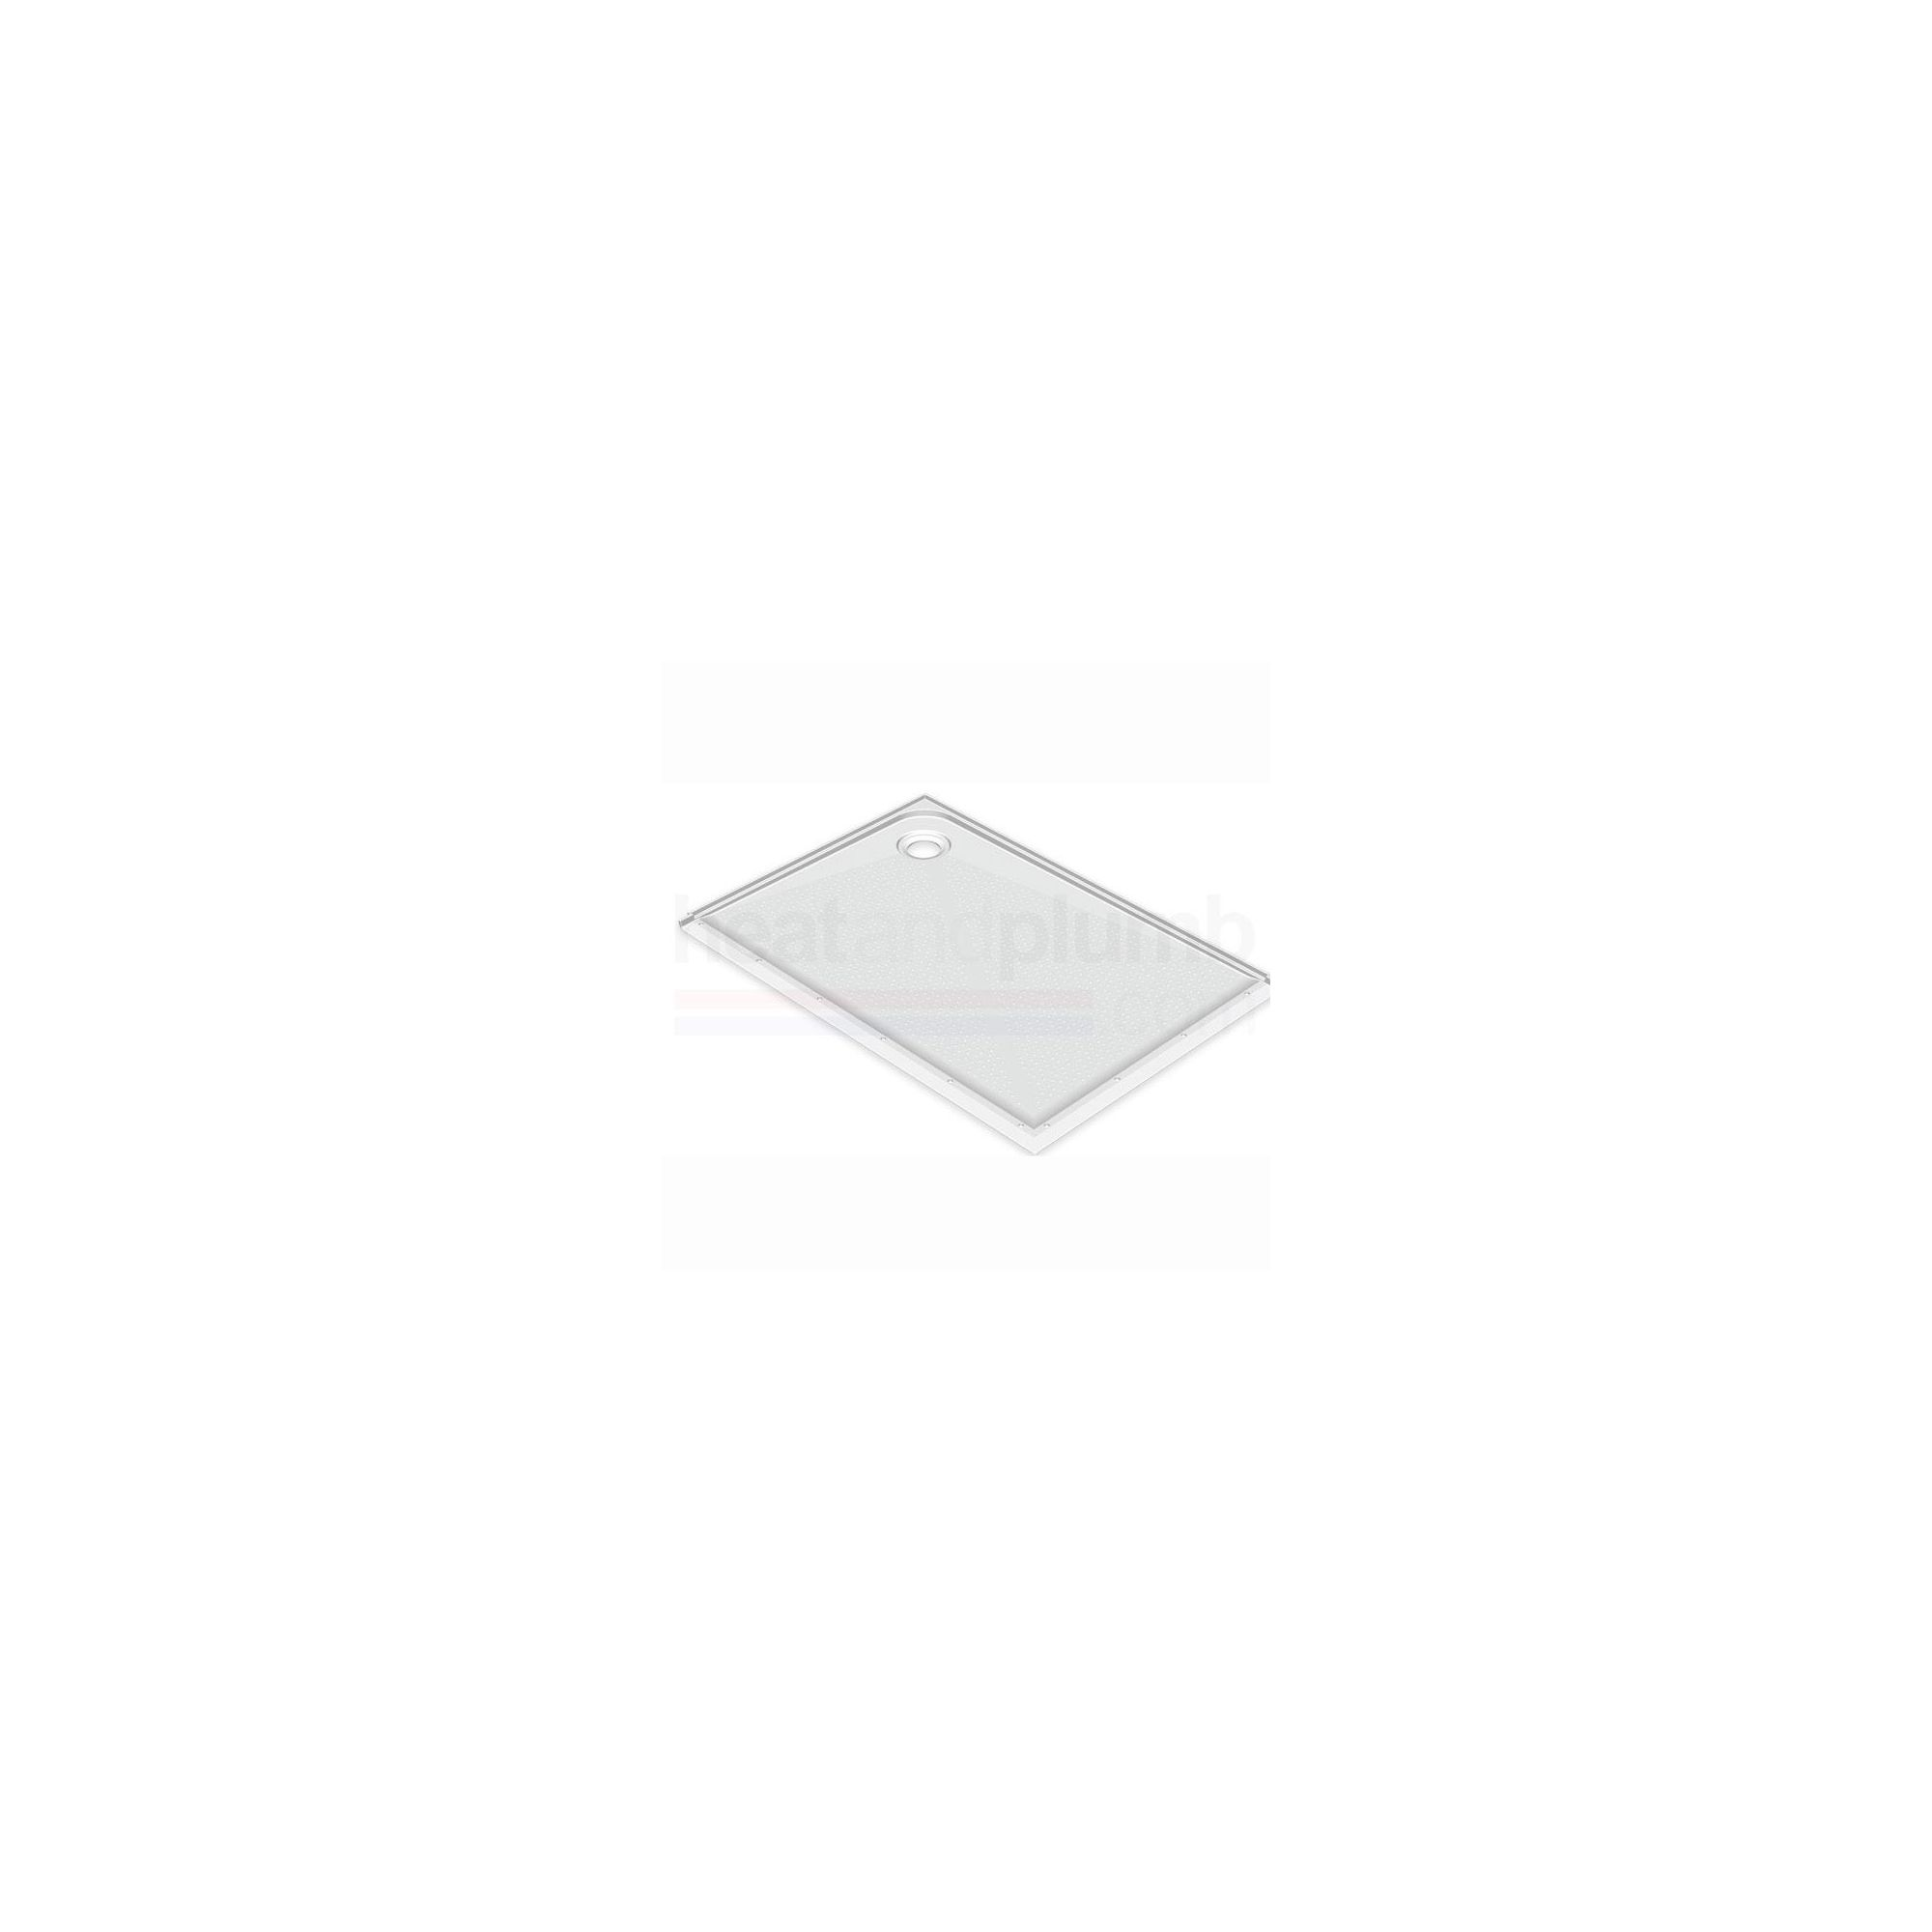 AKW Dalby Rectangular Shower Tray 1200mm x 820mm at Tesco Direct